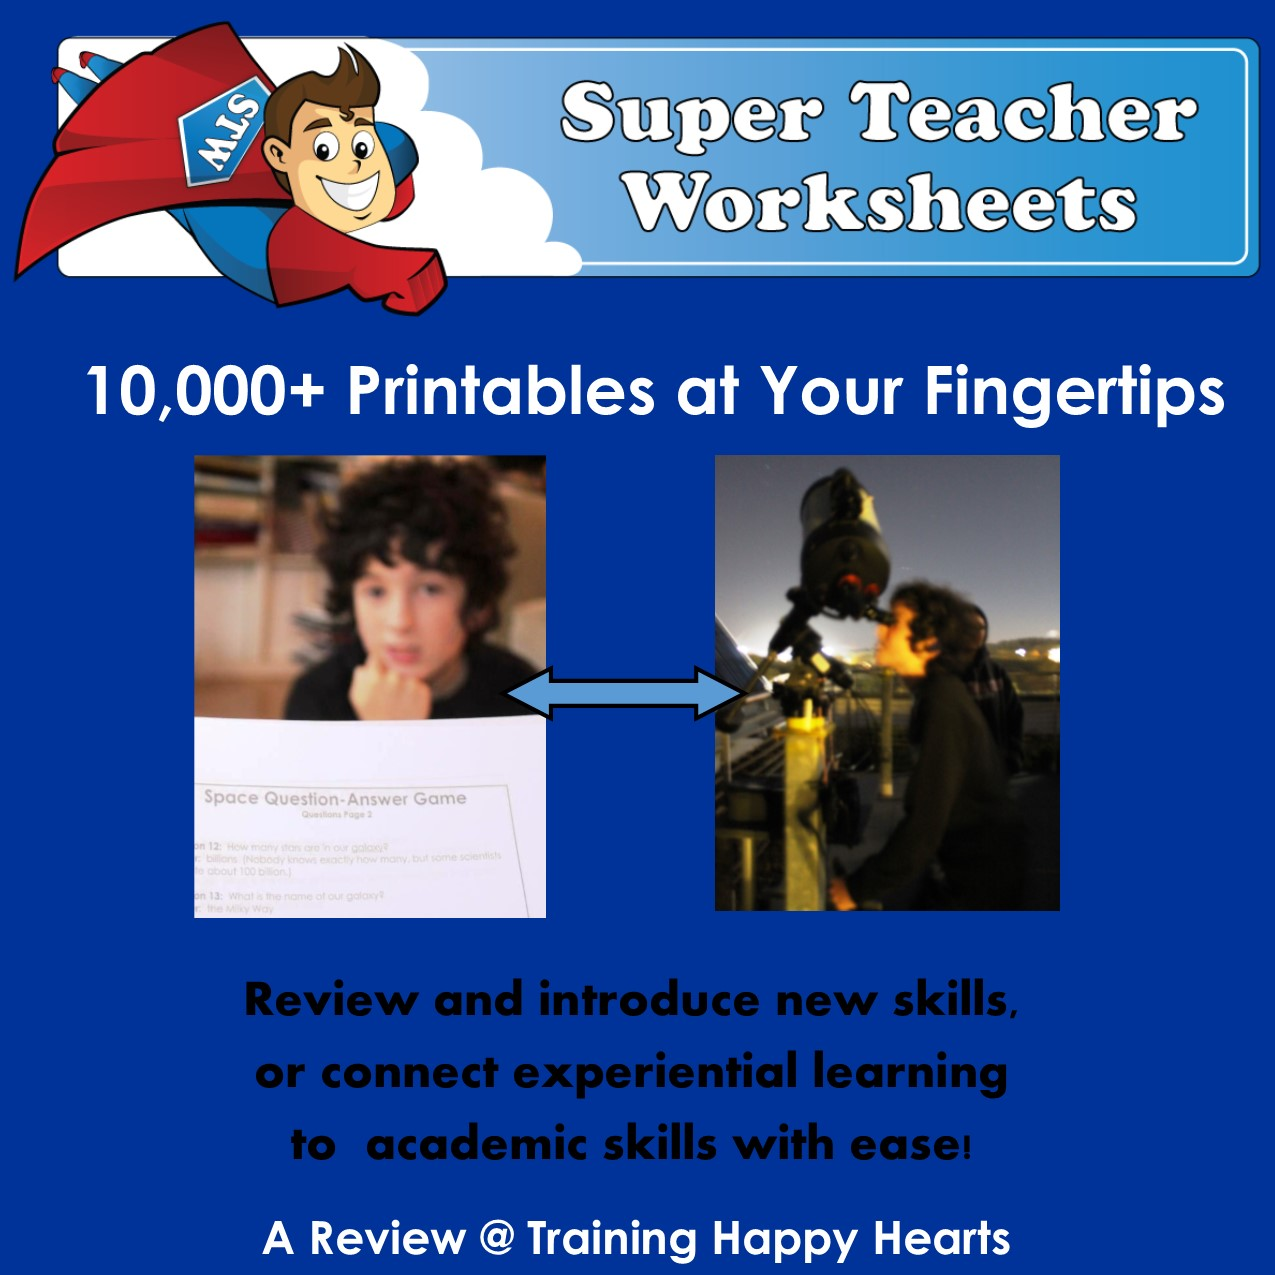 Training Happy Hearts Super Teacher Worksheets for the Win – Super Teacher Worksheets Username and Password